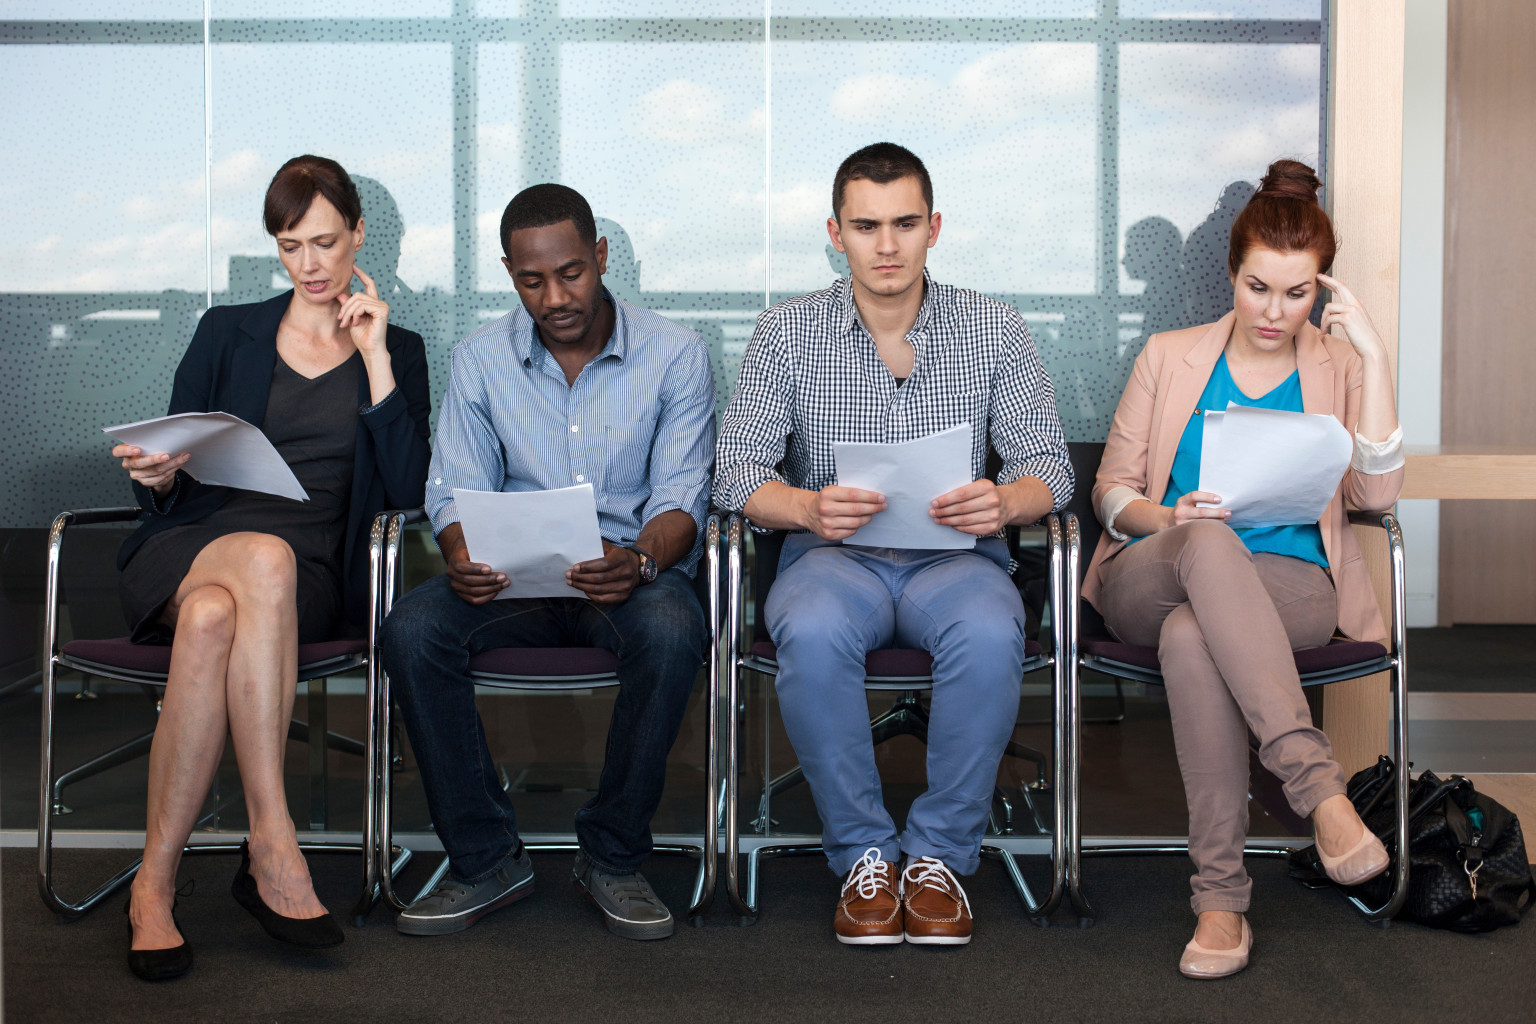 More Graduate Jobs But There's Still 46 Applicants Competing For ...